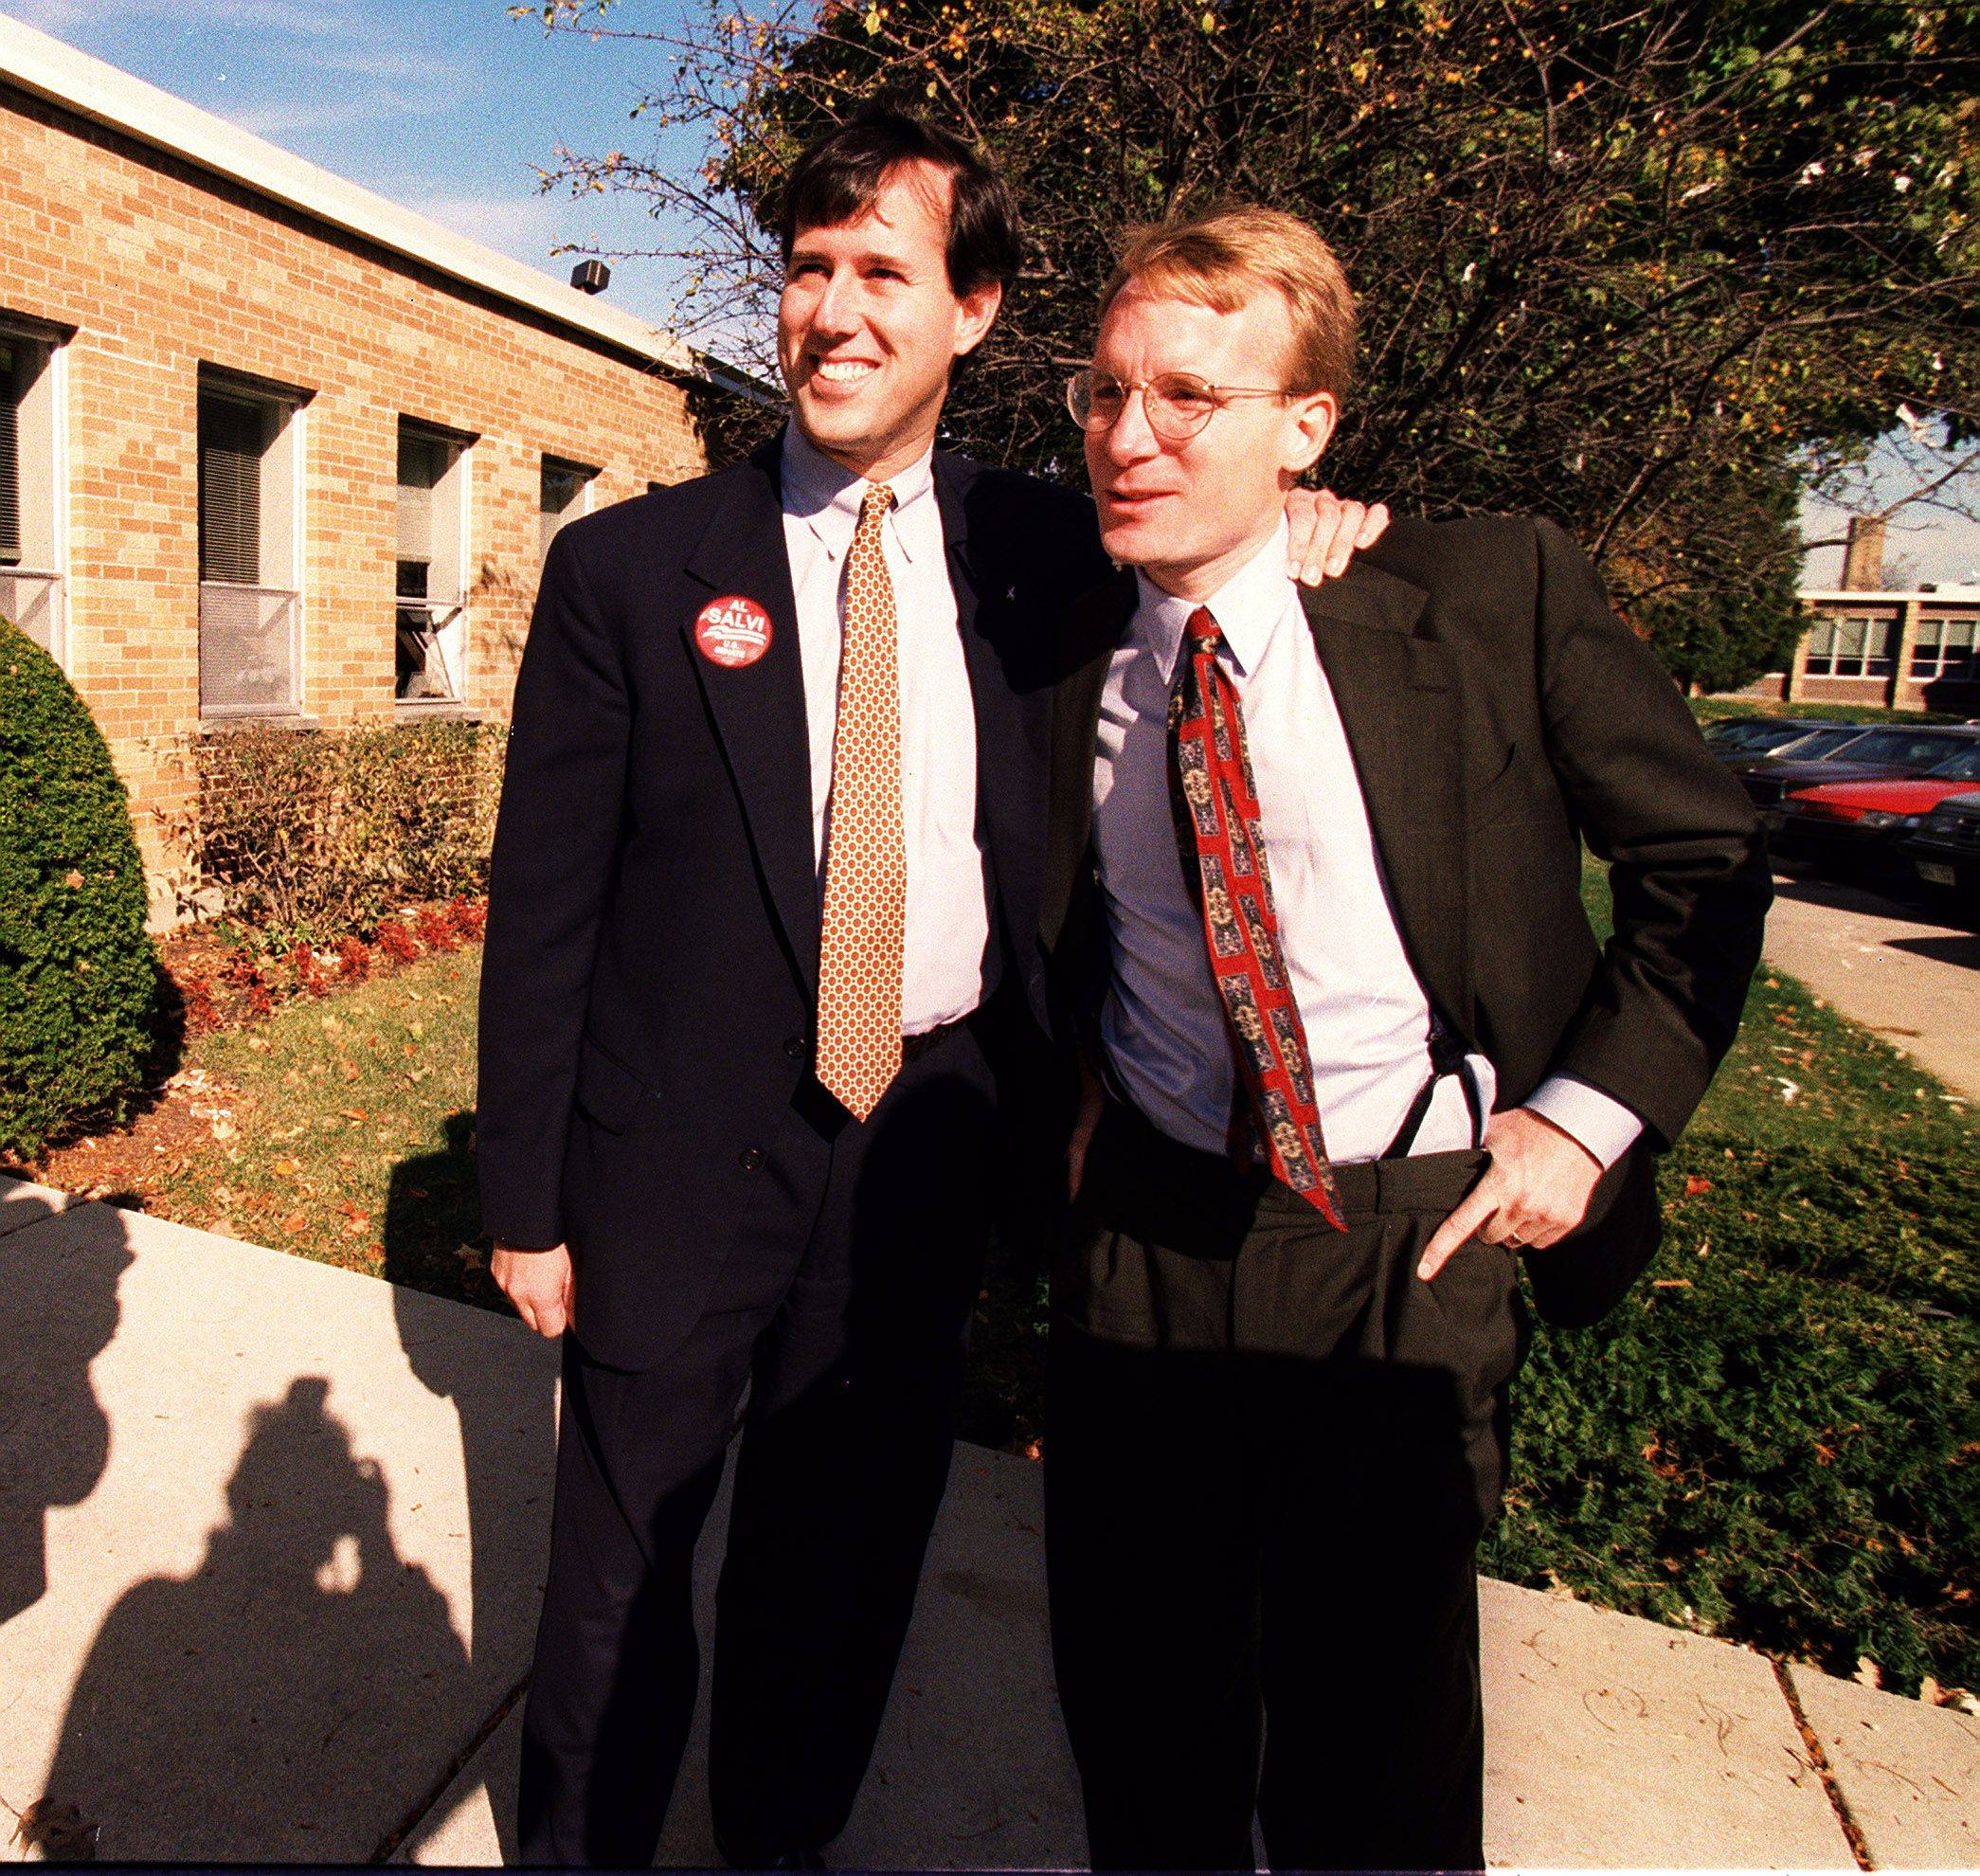 Then-Sen. Rick Santorum, left, with Al Salvi outside Mundelein's Carmel Catholic High School in 1996.